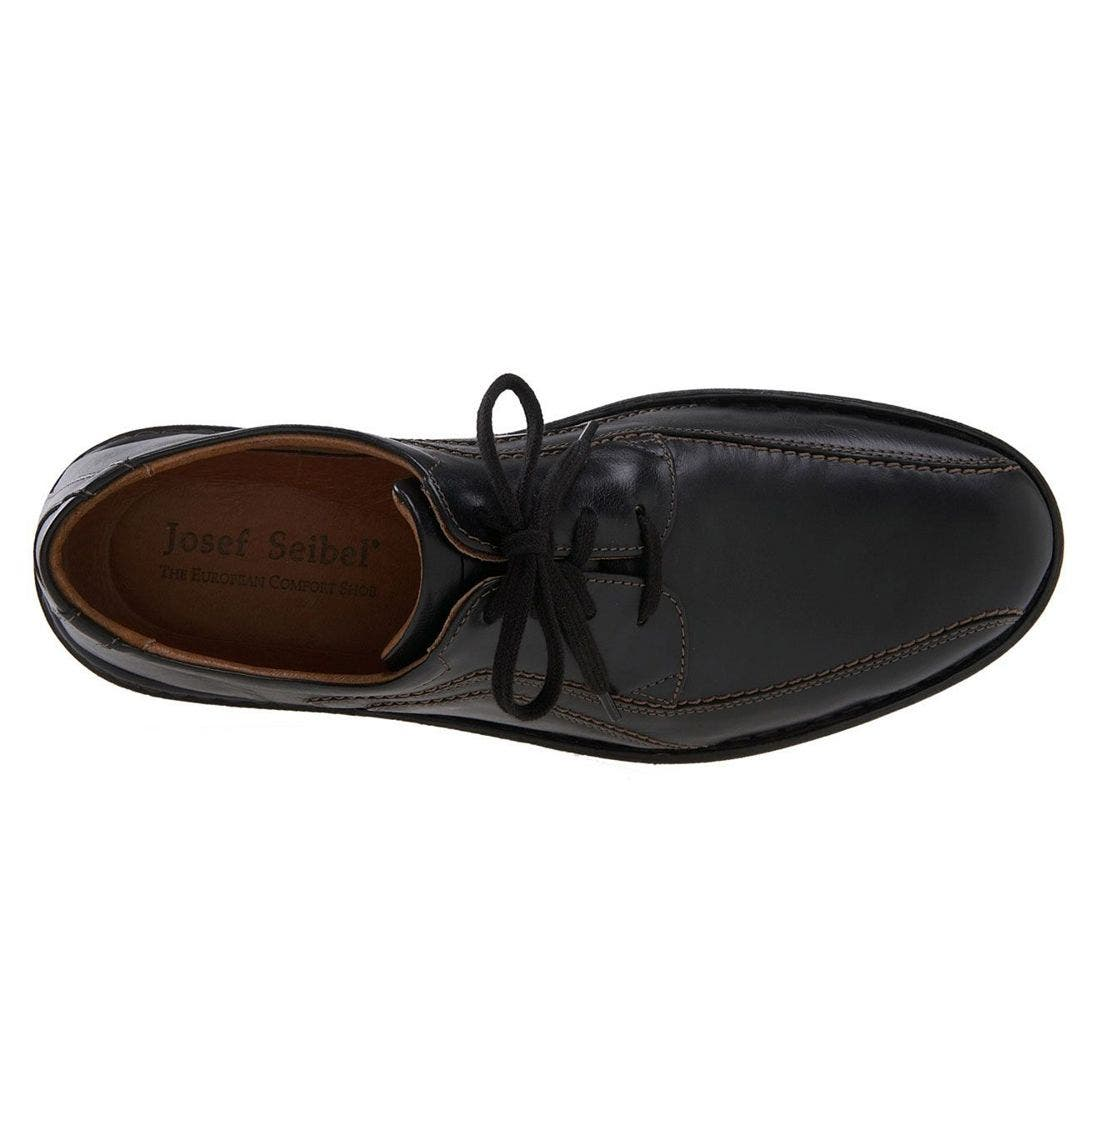 Alternate Image 2  - Josef Seibel 'Sander' Oxford